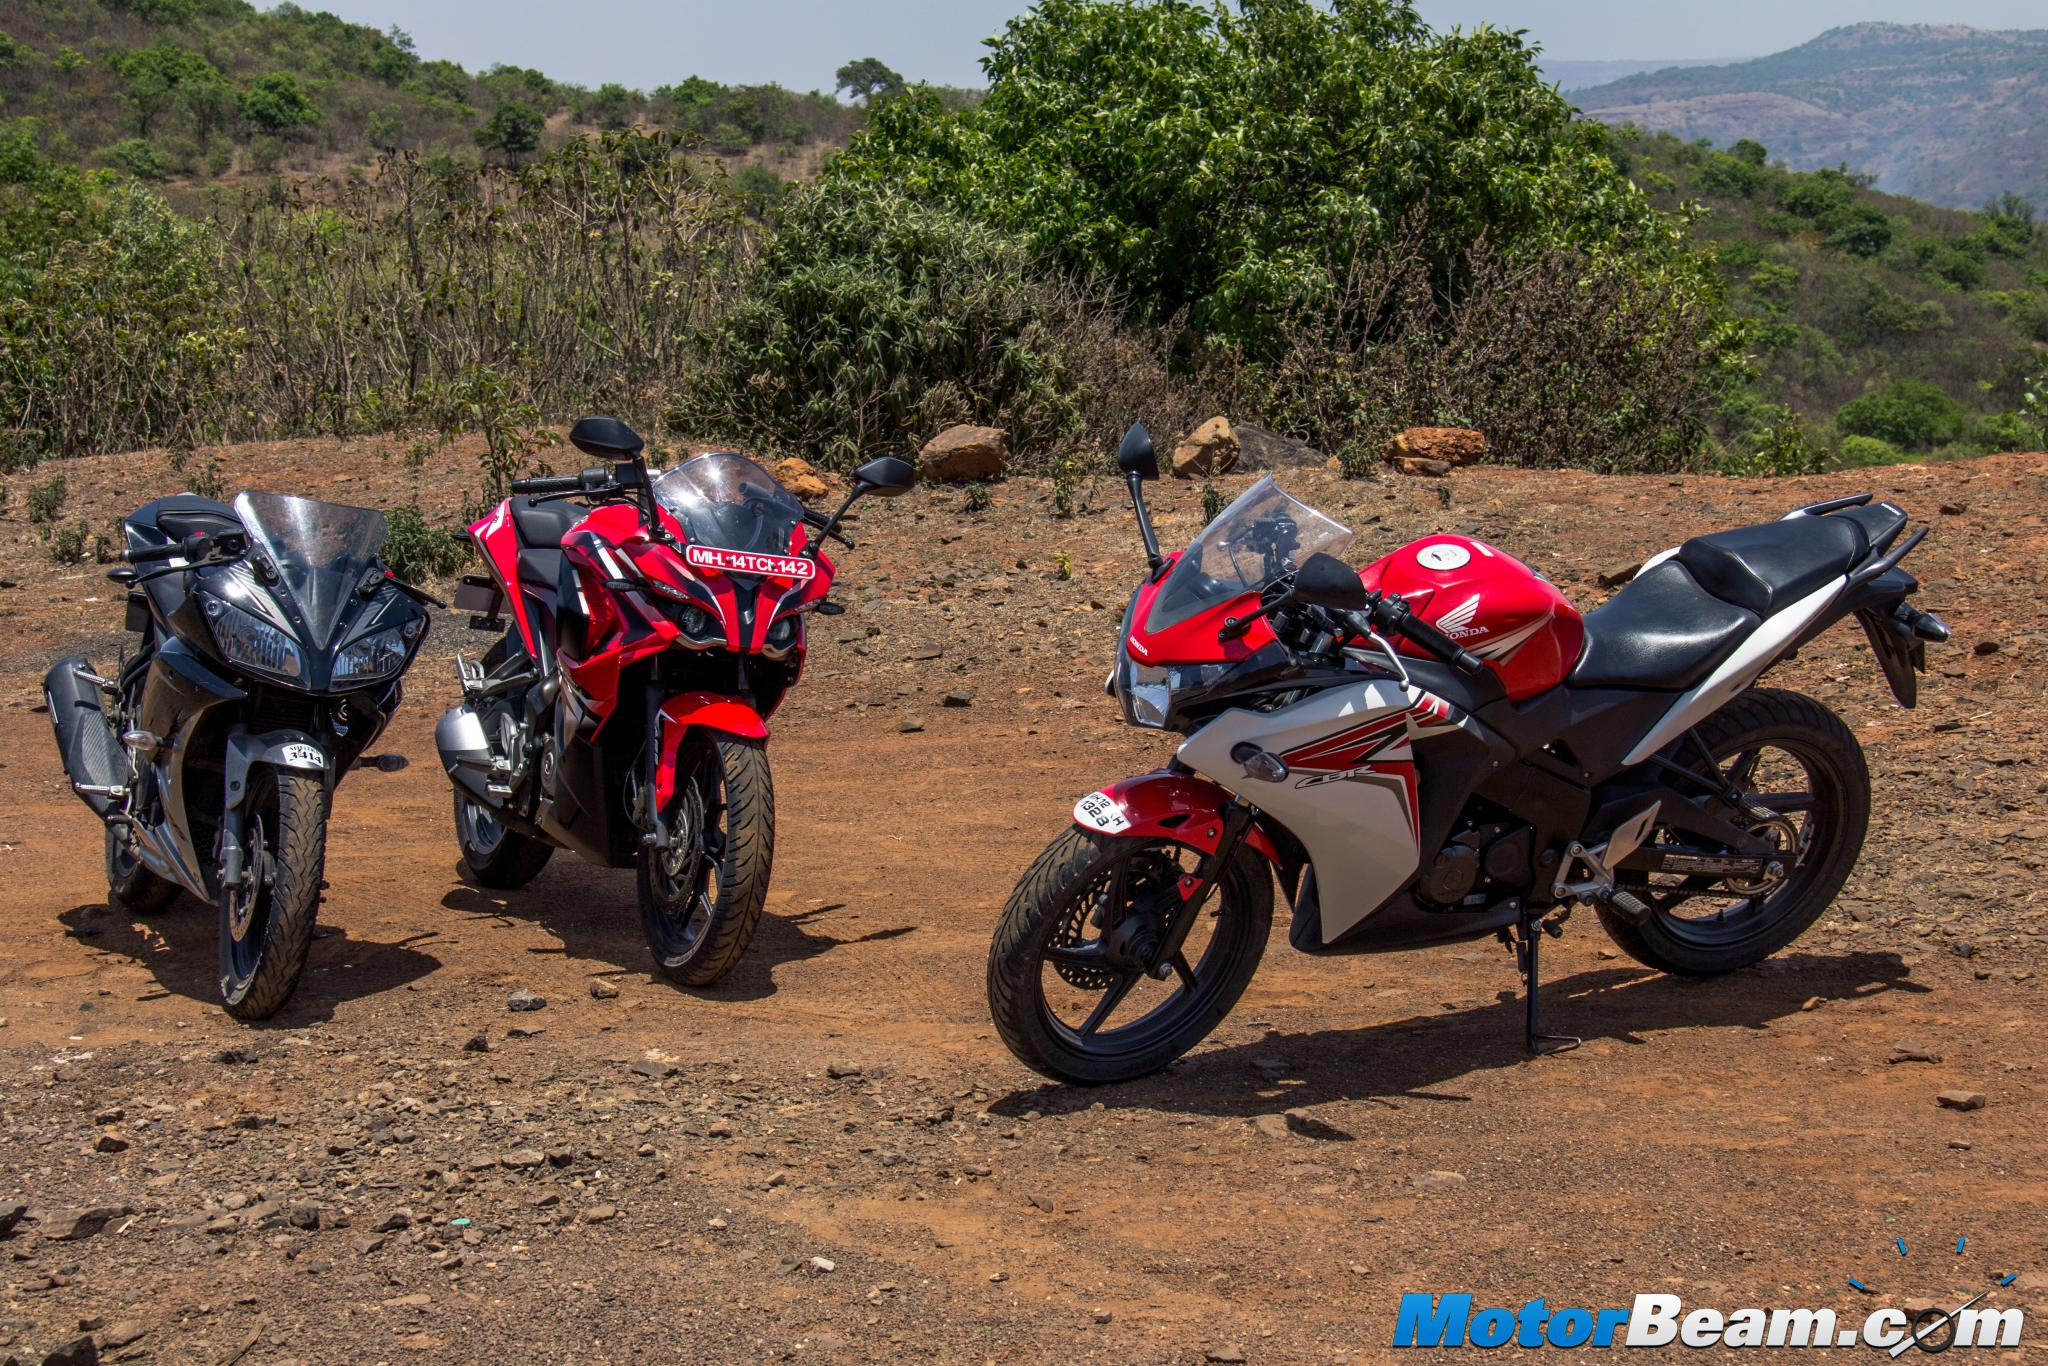 Bajaj pulsar rs200 vs ktm rc200 vs honda cbr250r comparison youtube - Yamaha R15 Vs Pulsar Rs 200 Vs Honda Cbr150r Shootout